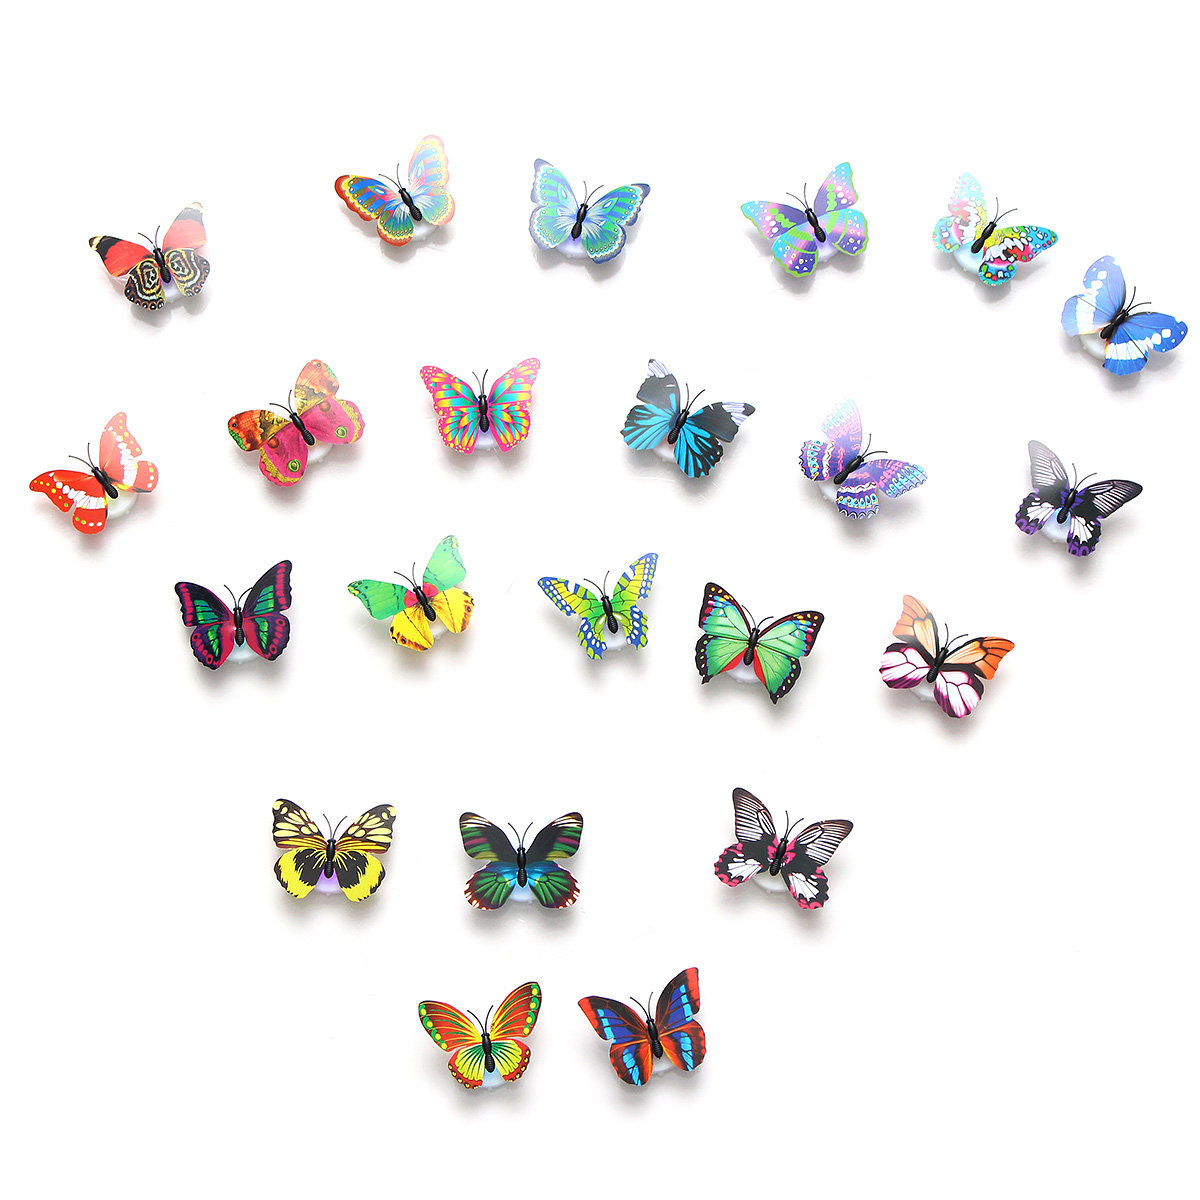 2Pcs Led Glowing 3D Butterfly Night Light Sticker Art Design Mural Home  Wall Decor Intended For 3 Piece Capri Butterfly Wall Decor Sets (Photo 29 of 30)